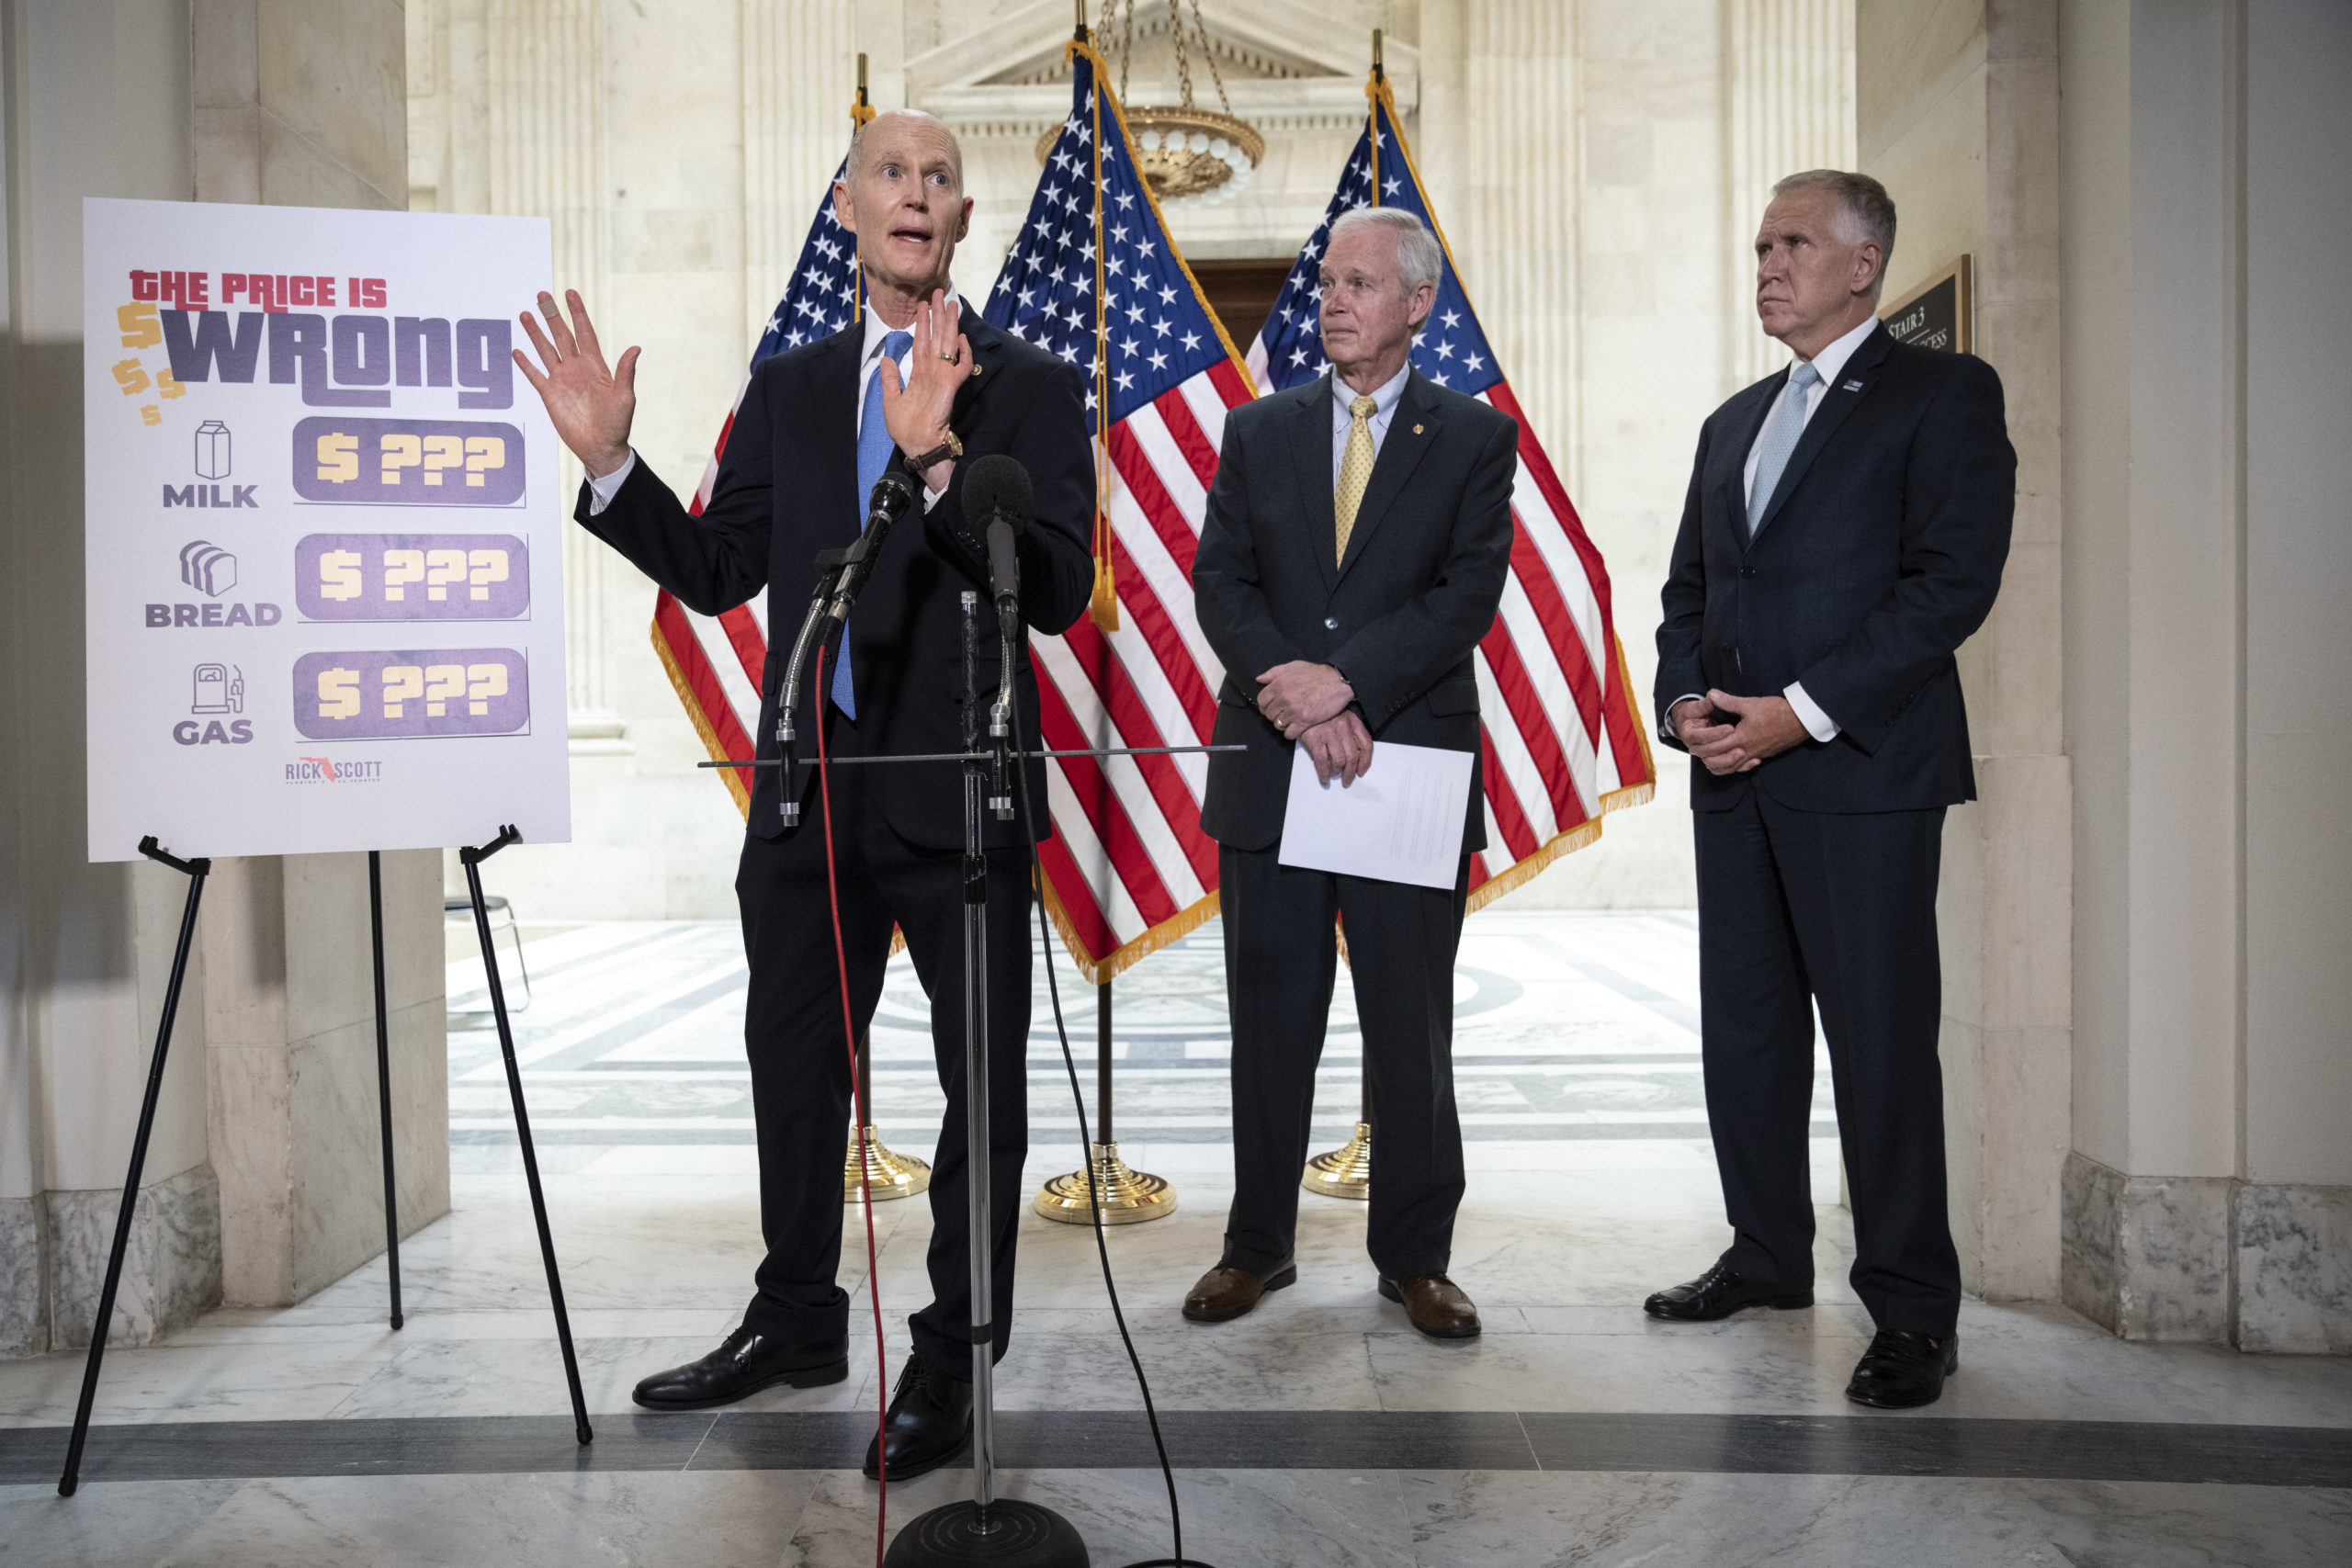 Republican Sens. Rick Scott, Ron Johnson and Thom Tillis hold a news conference about inflation on May 26. (Drew Angerer/Getty Images)